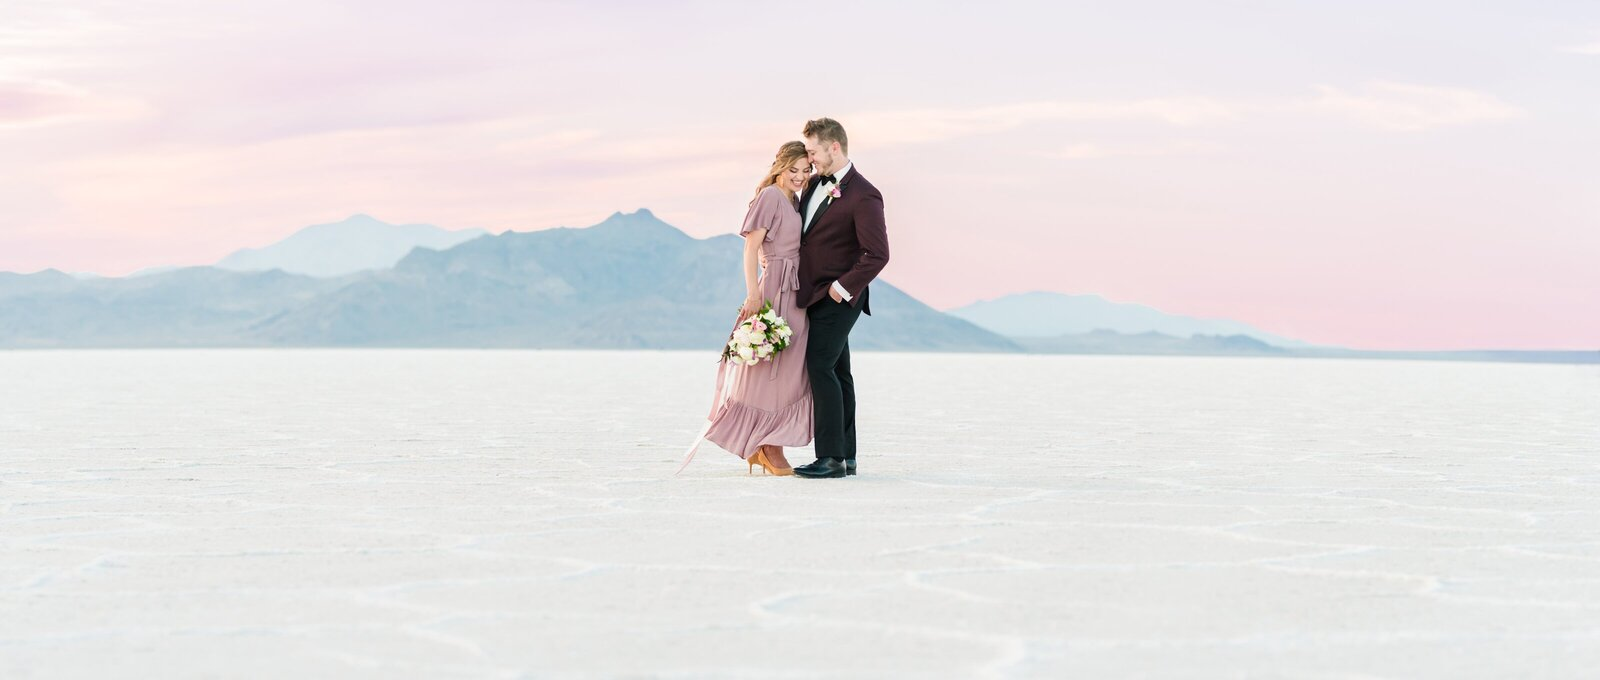 15 Bonneville Salt Flats Milky Way Anniversary Session_Jessie and Dallin Photography_011